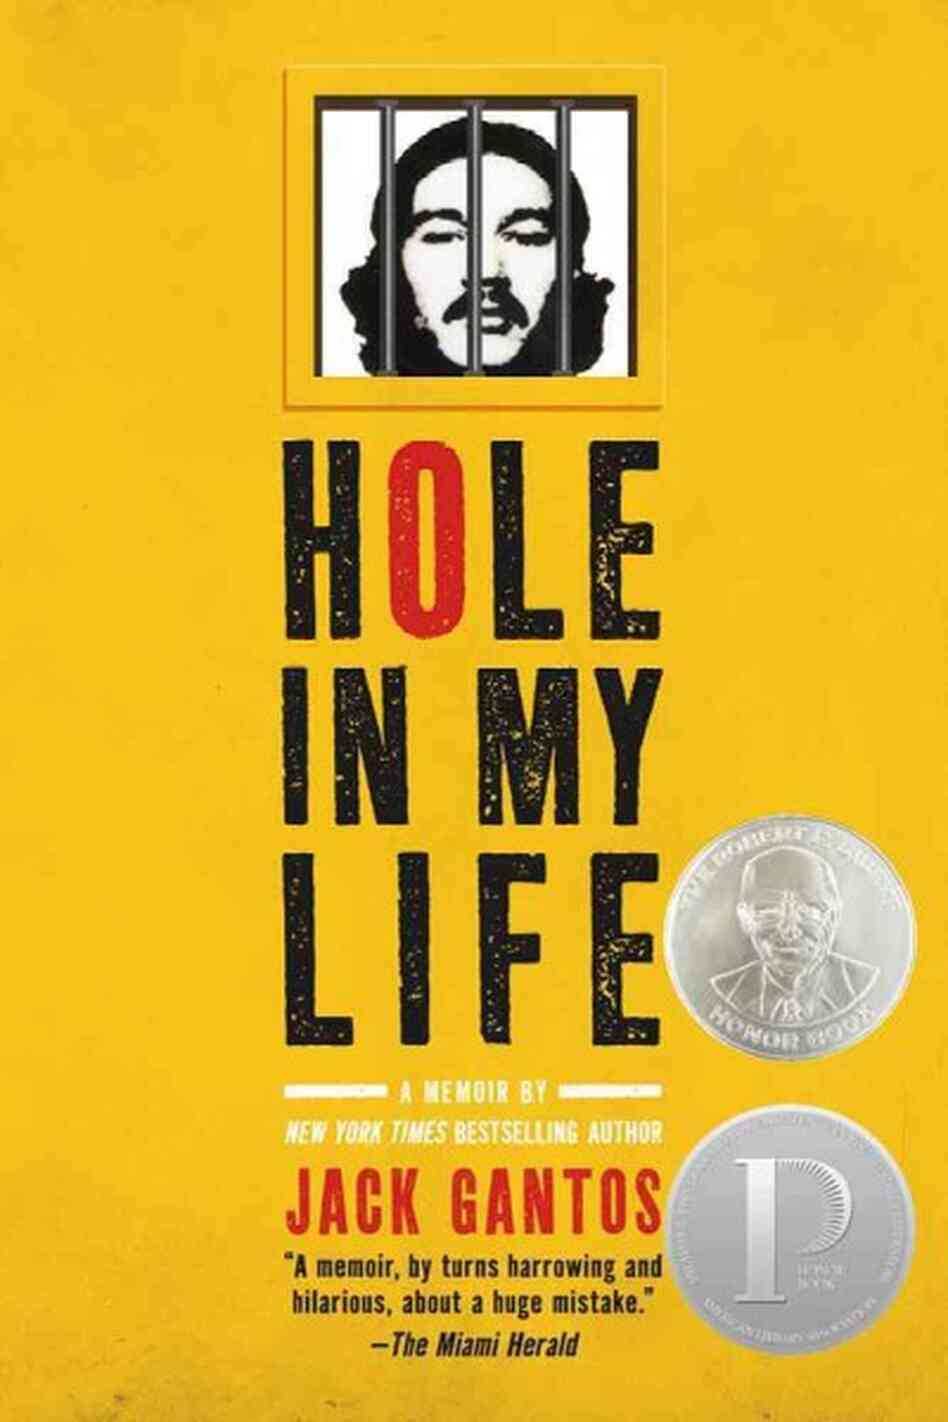 the line in hole in my life a memoir by jack gantos Hole in my life by jack gantos farrar, straus $800 isbn 9780374430894 biography & memoir / memoir buy the book trending book reviews only child by rhiannon navin readers learn several things very quickly in the first devastating pages of rhiannon navin's debut.